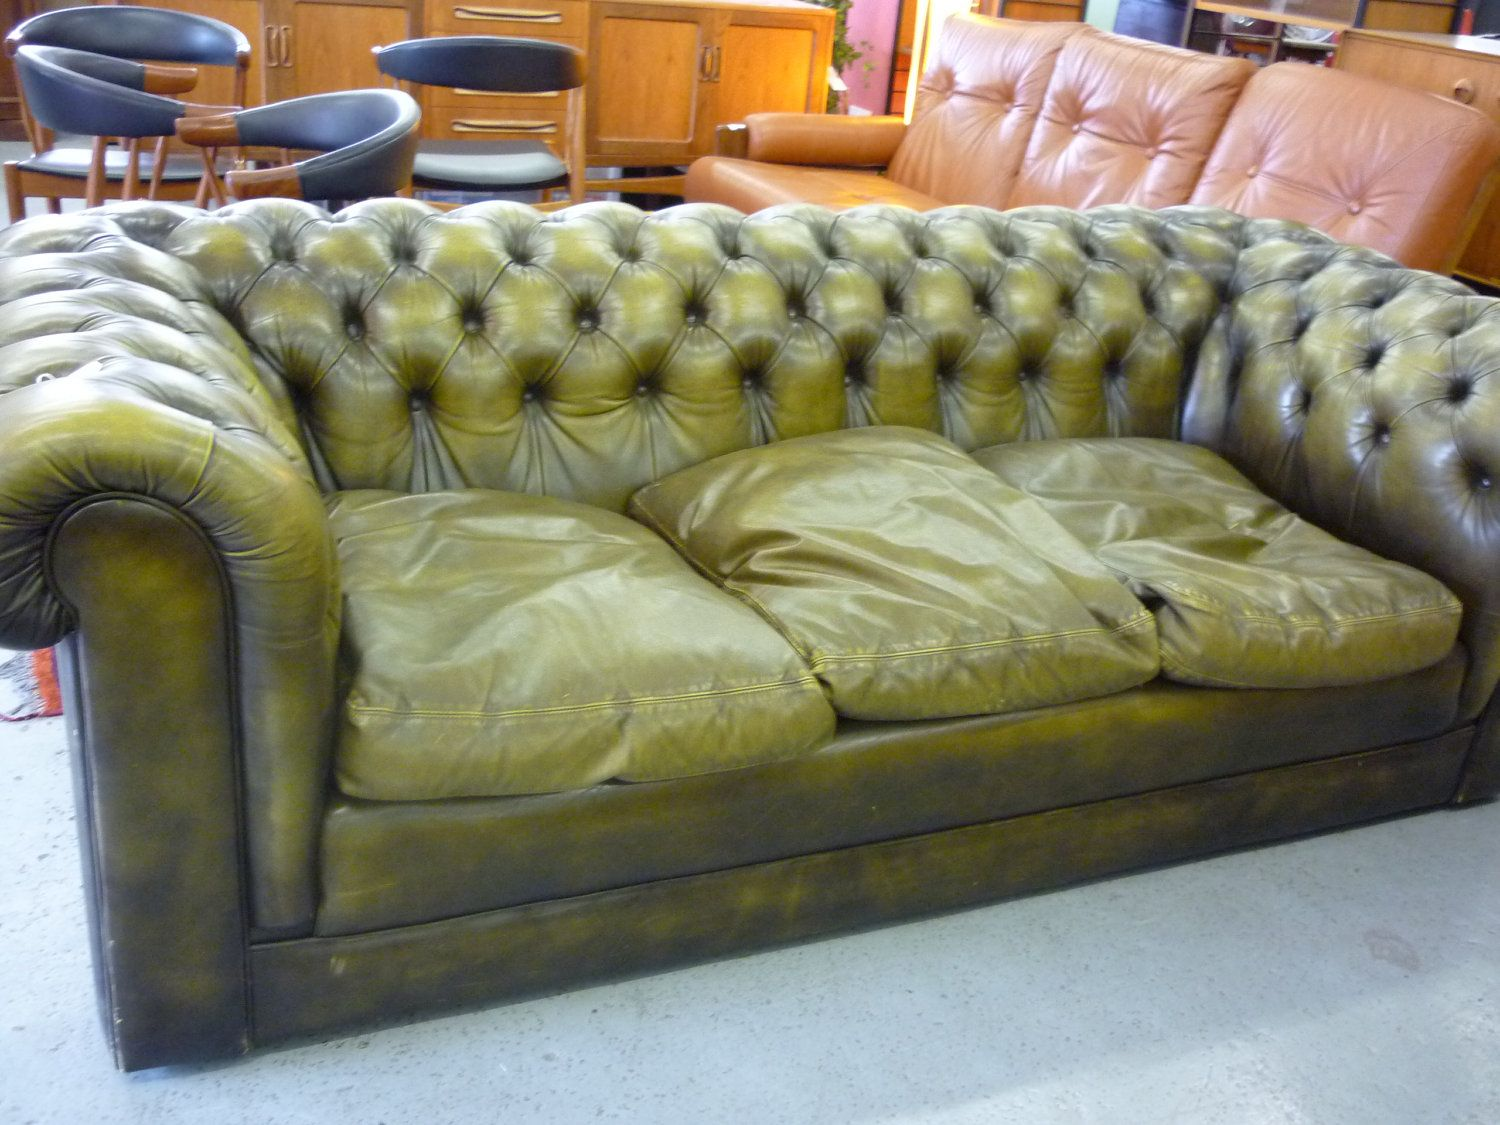 Pleasing Reduced Olive Green Leather Chesterfield Sofa 450 00 Via Pdpeps Interior Chair Design Pdpepsorg